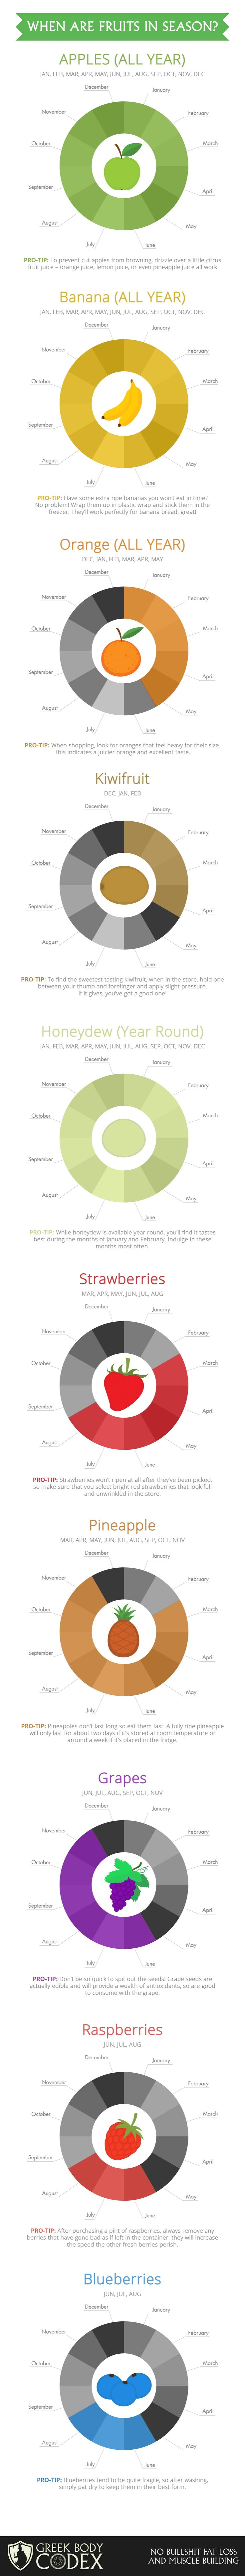 Let RelishCaterers.com cater your next event!  This infographic helps you keep up with in-season fruit